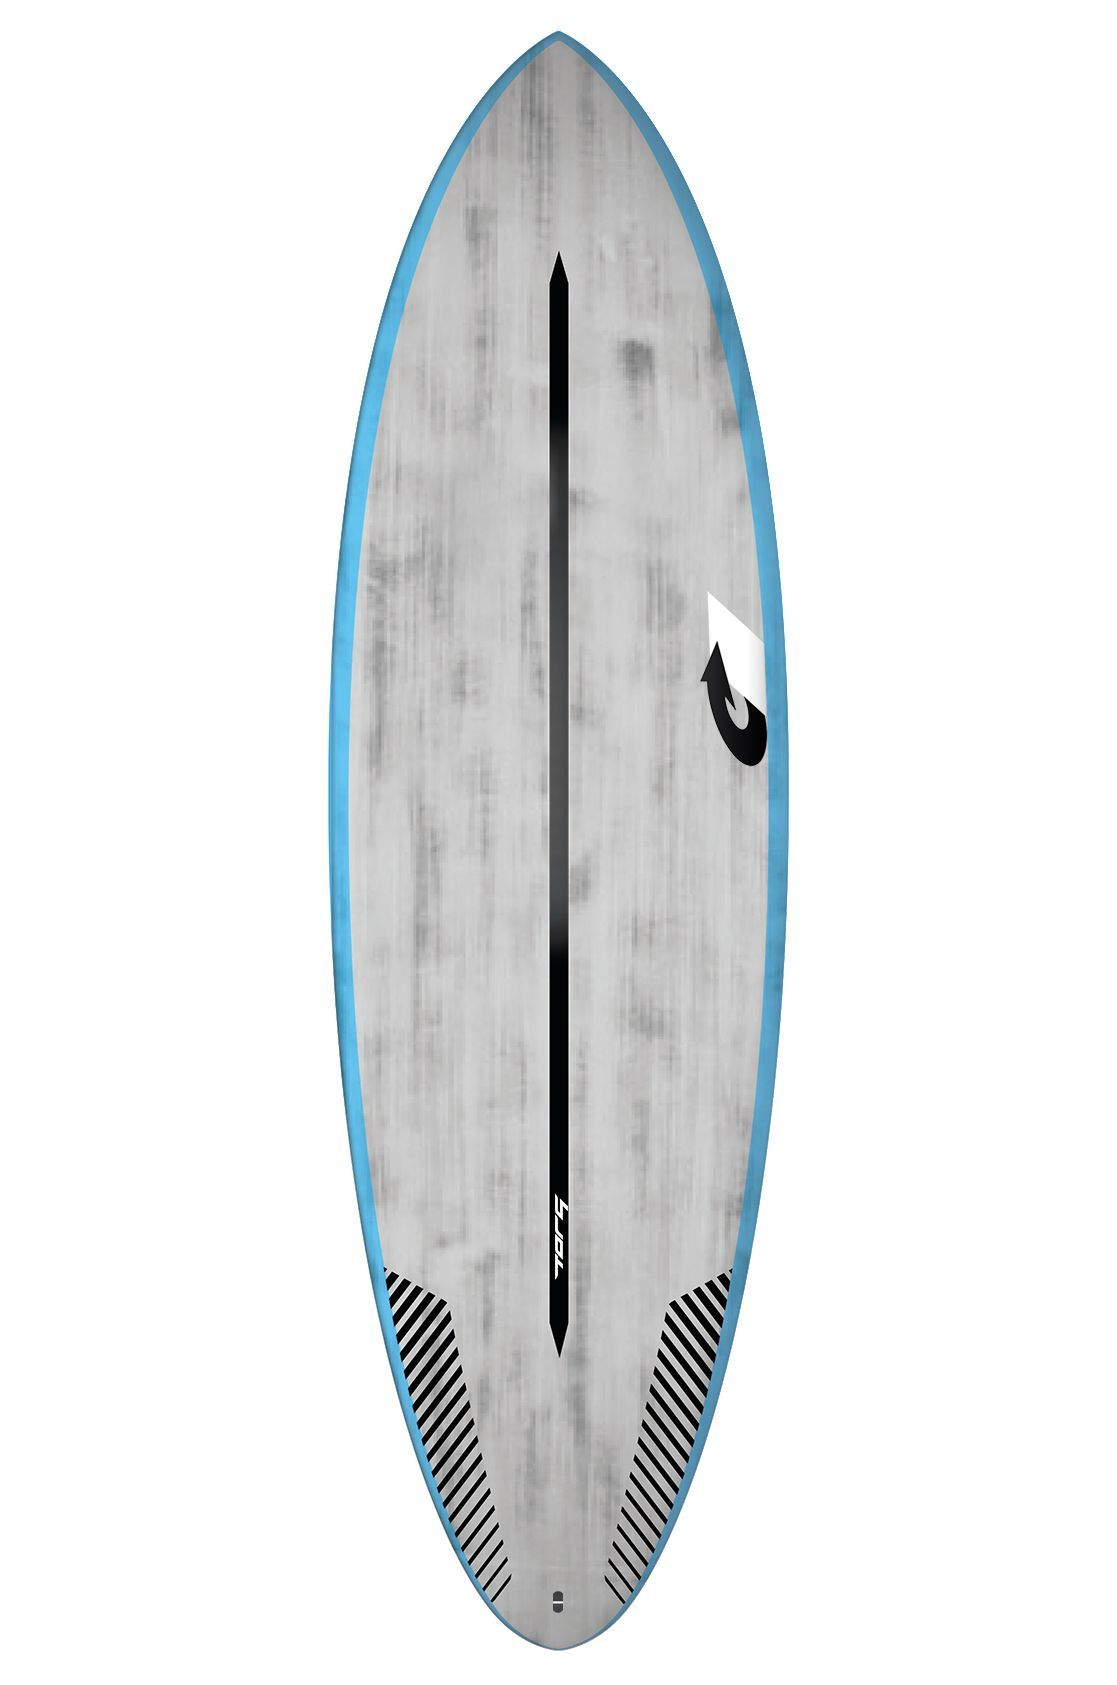 Prancha Surf Torq 6'4 MULTIPLIER BLUE RAILS + BRUSHED GRAY Round Tail - Color Futures Multisystem 6ft4